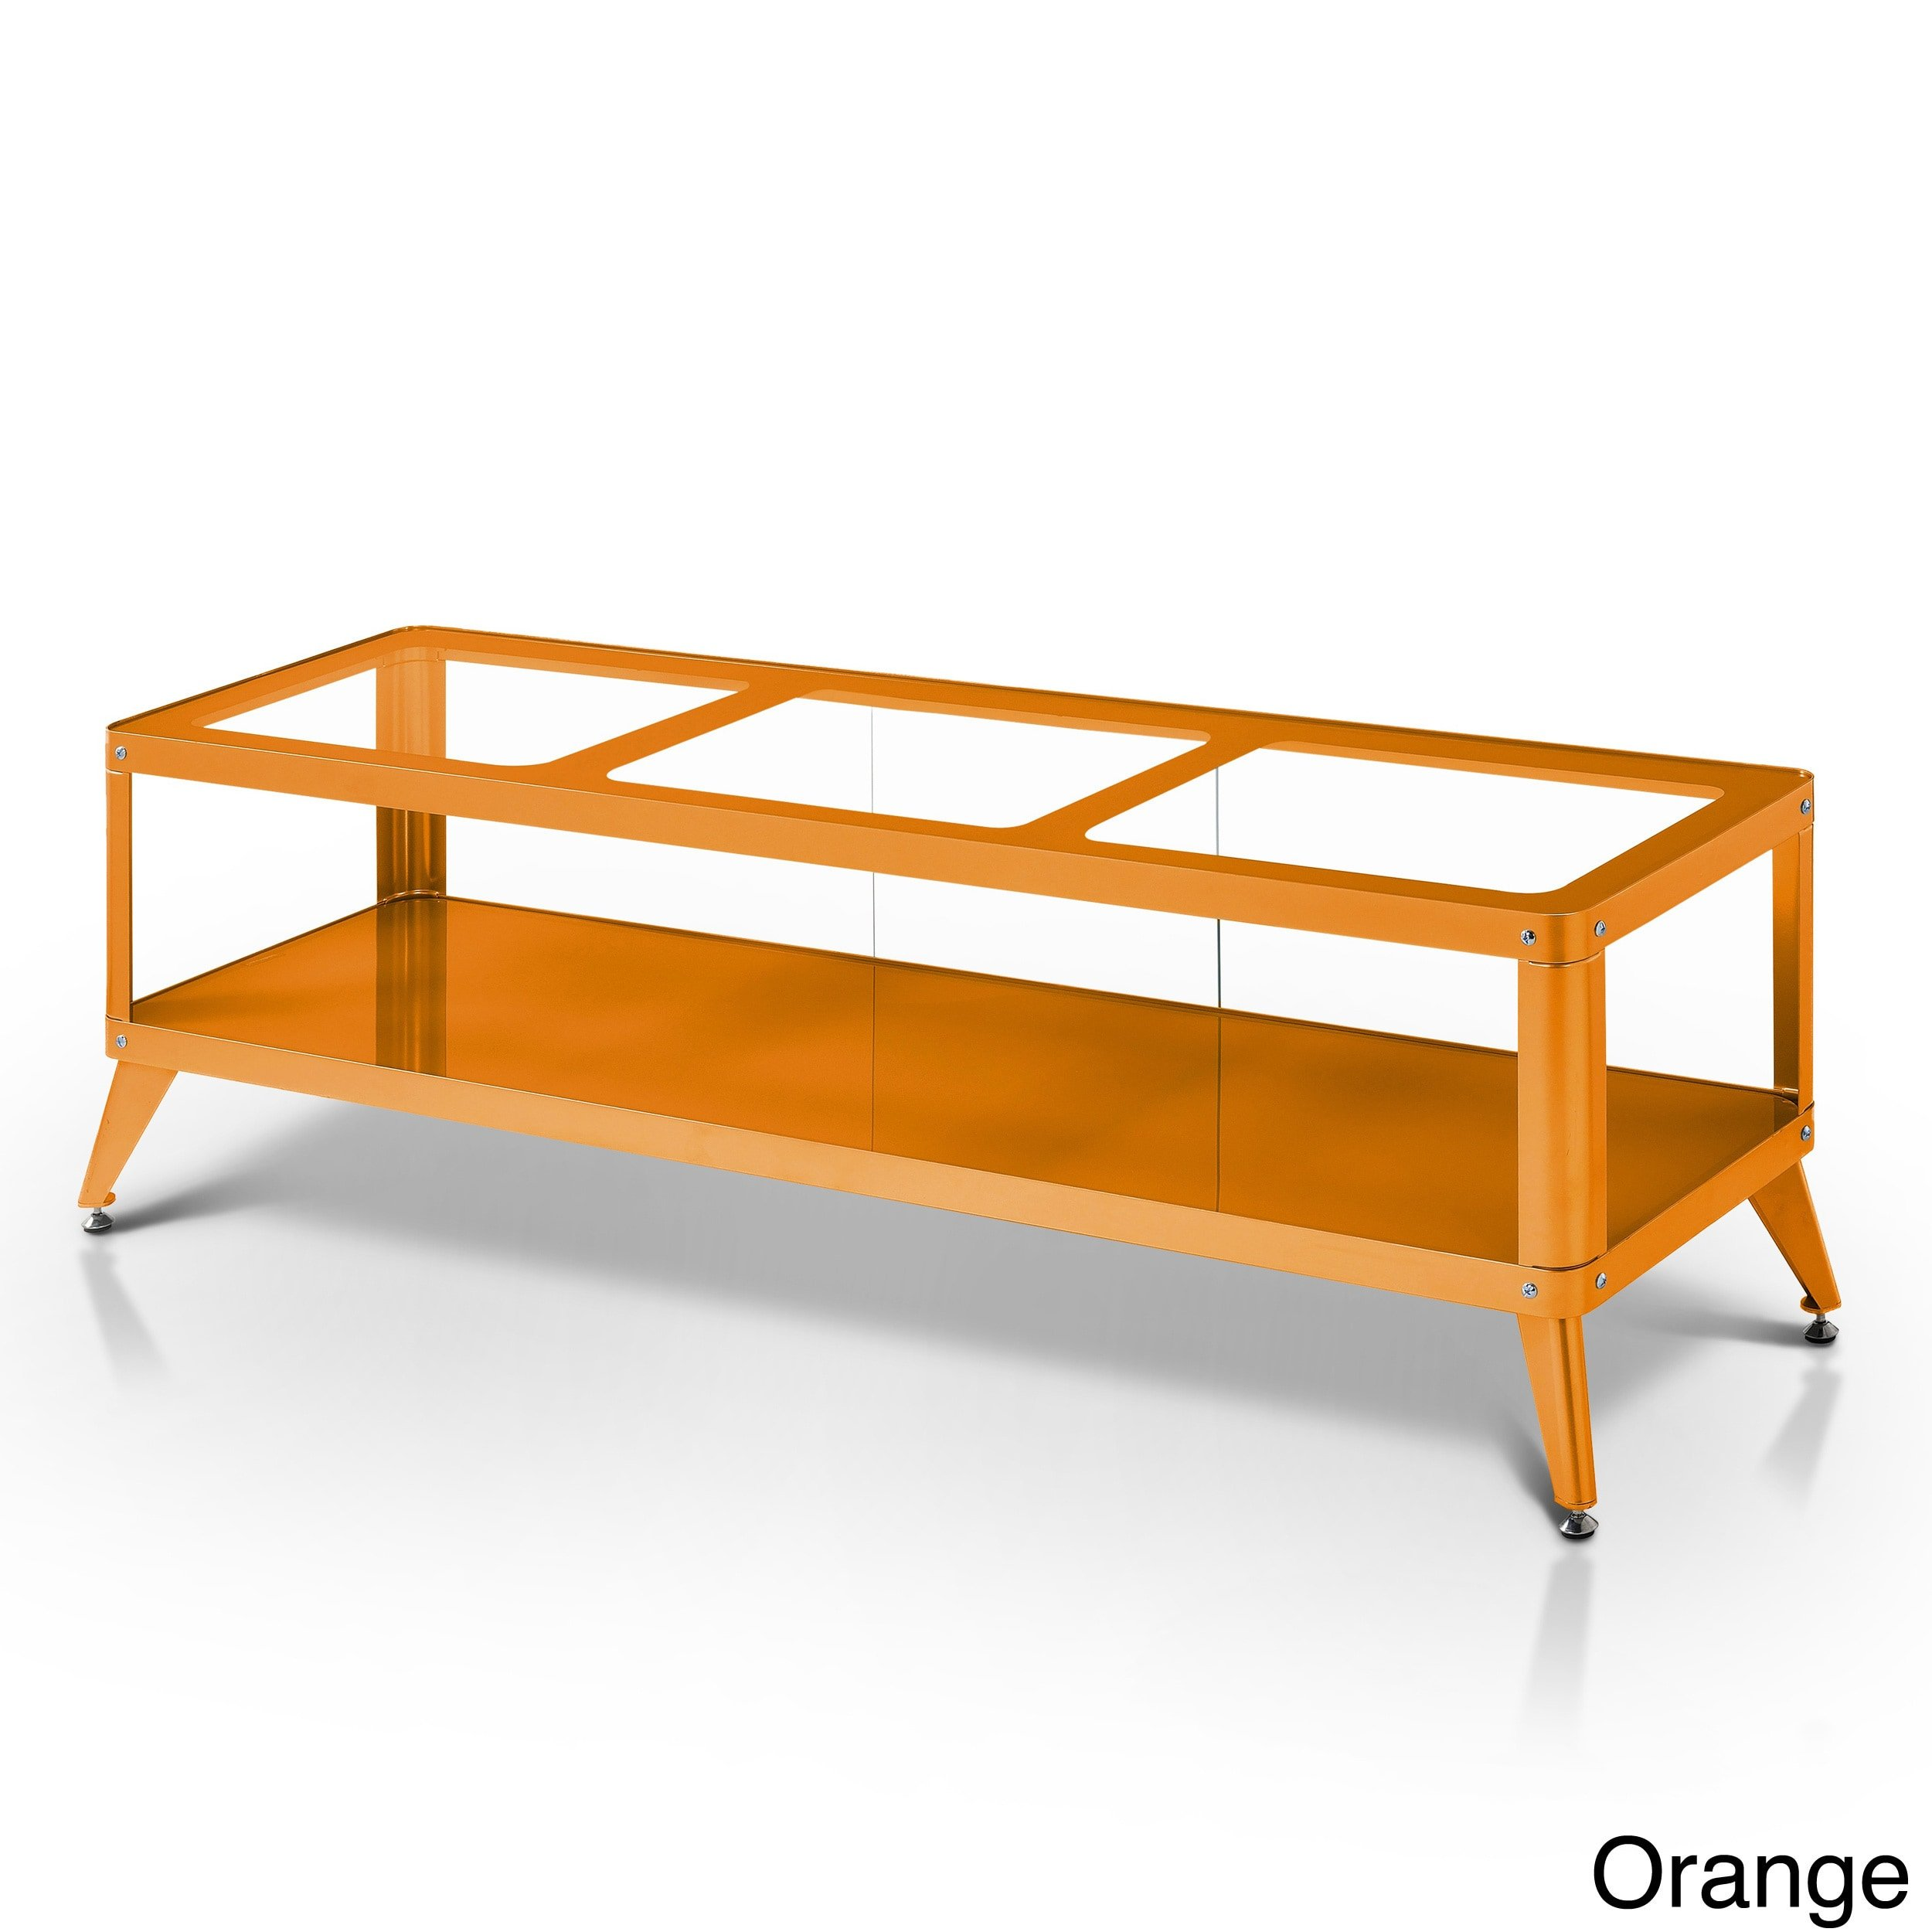 Furniture of America Linden Modern Glass Top TV Stand Orange 72